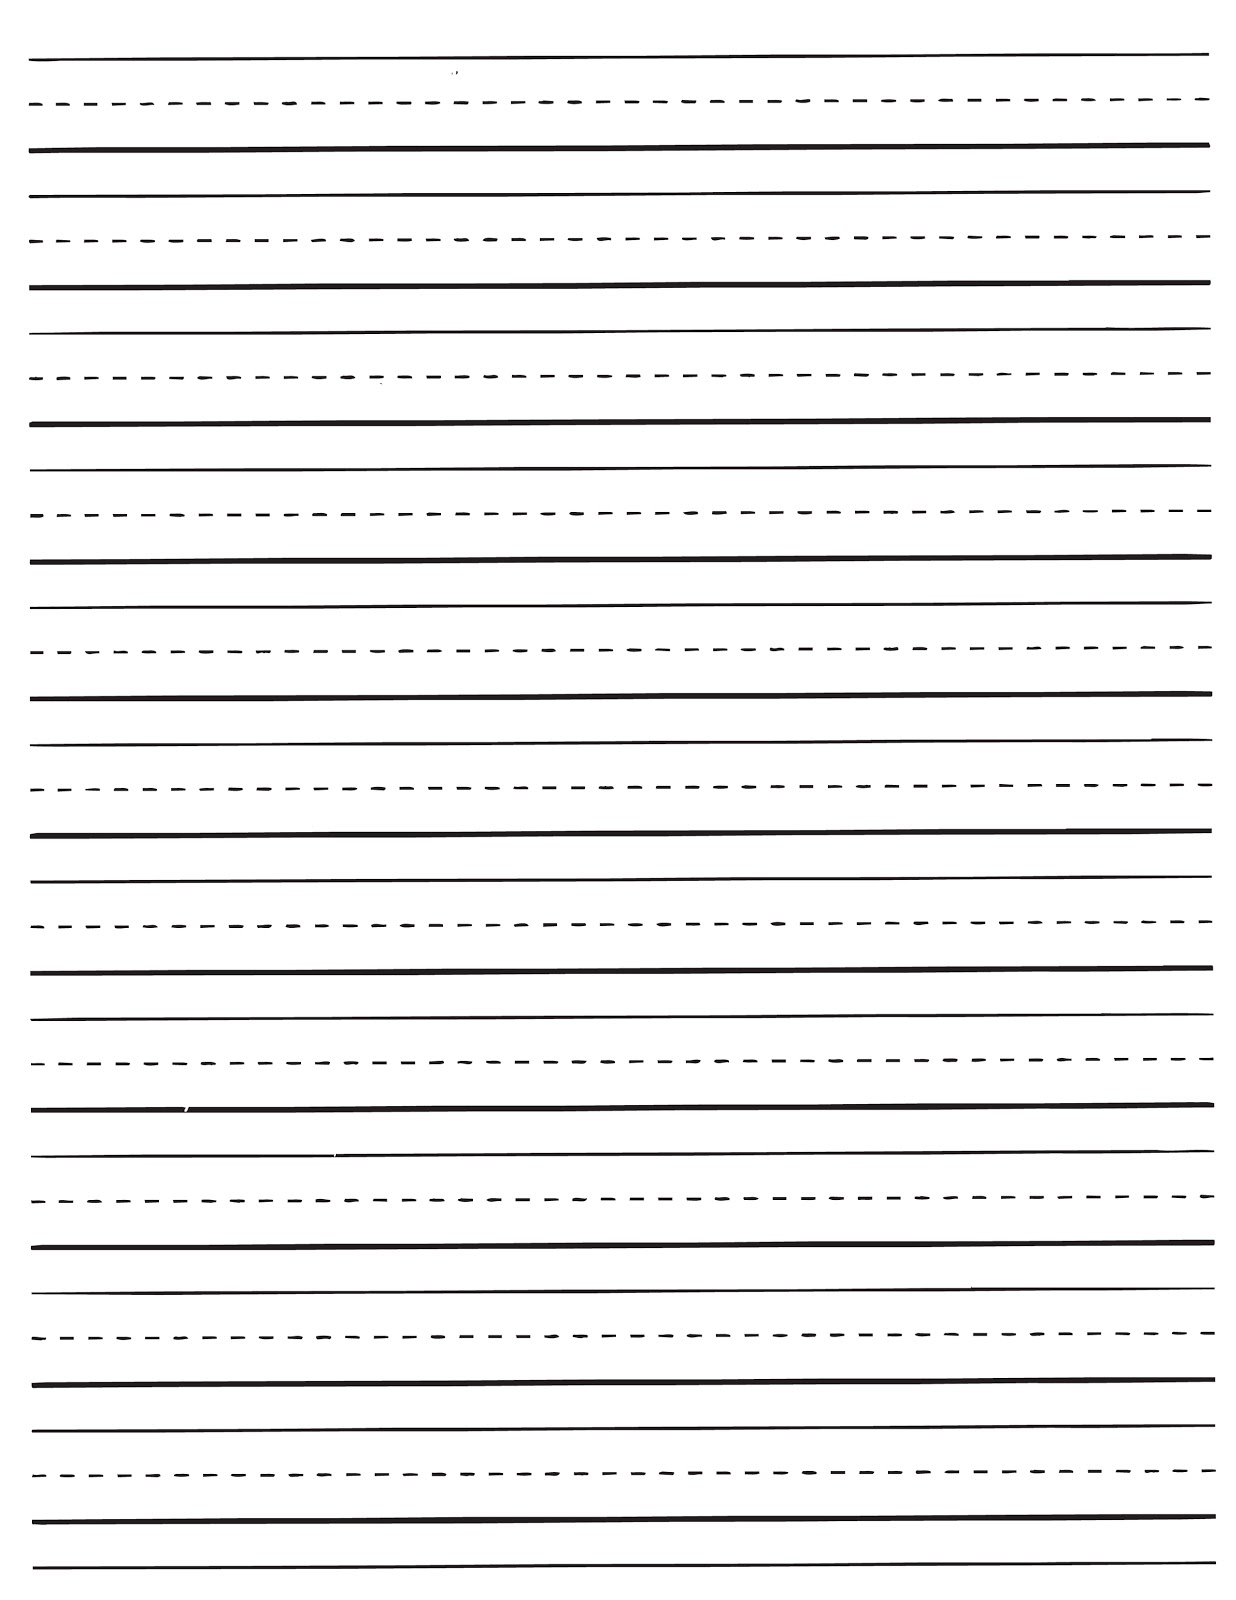 Ruled paper  Wikipedia